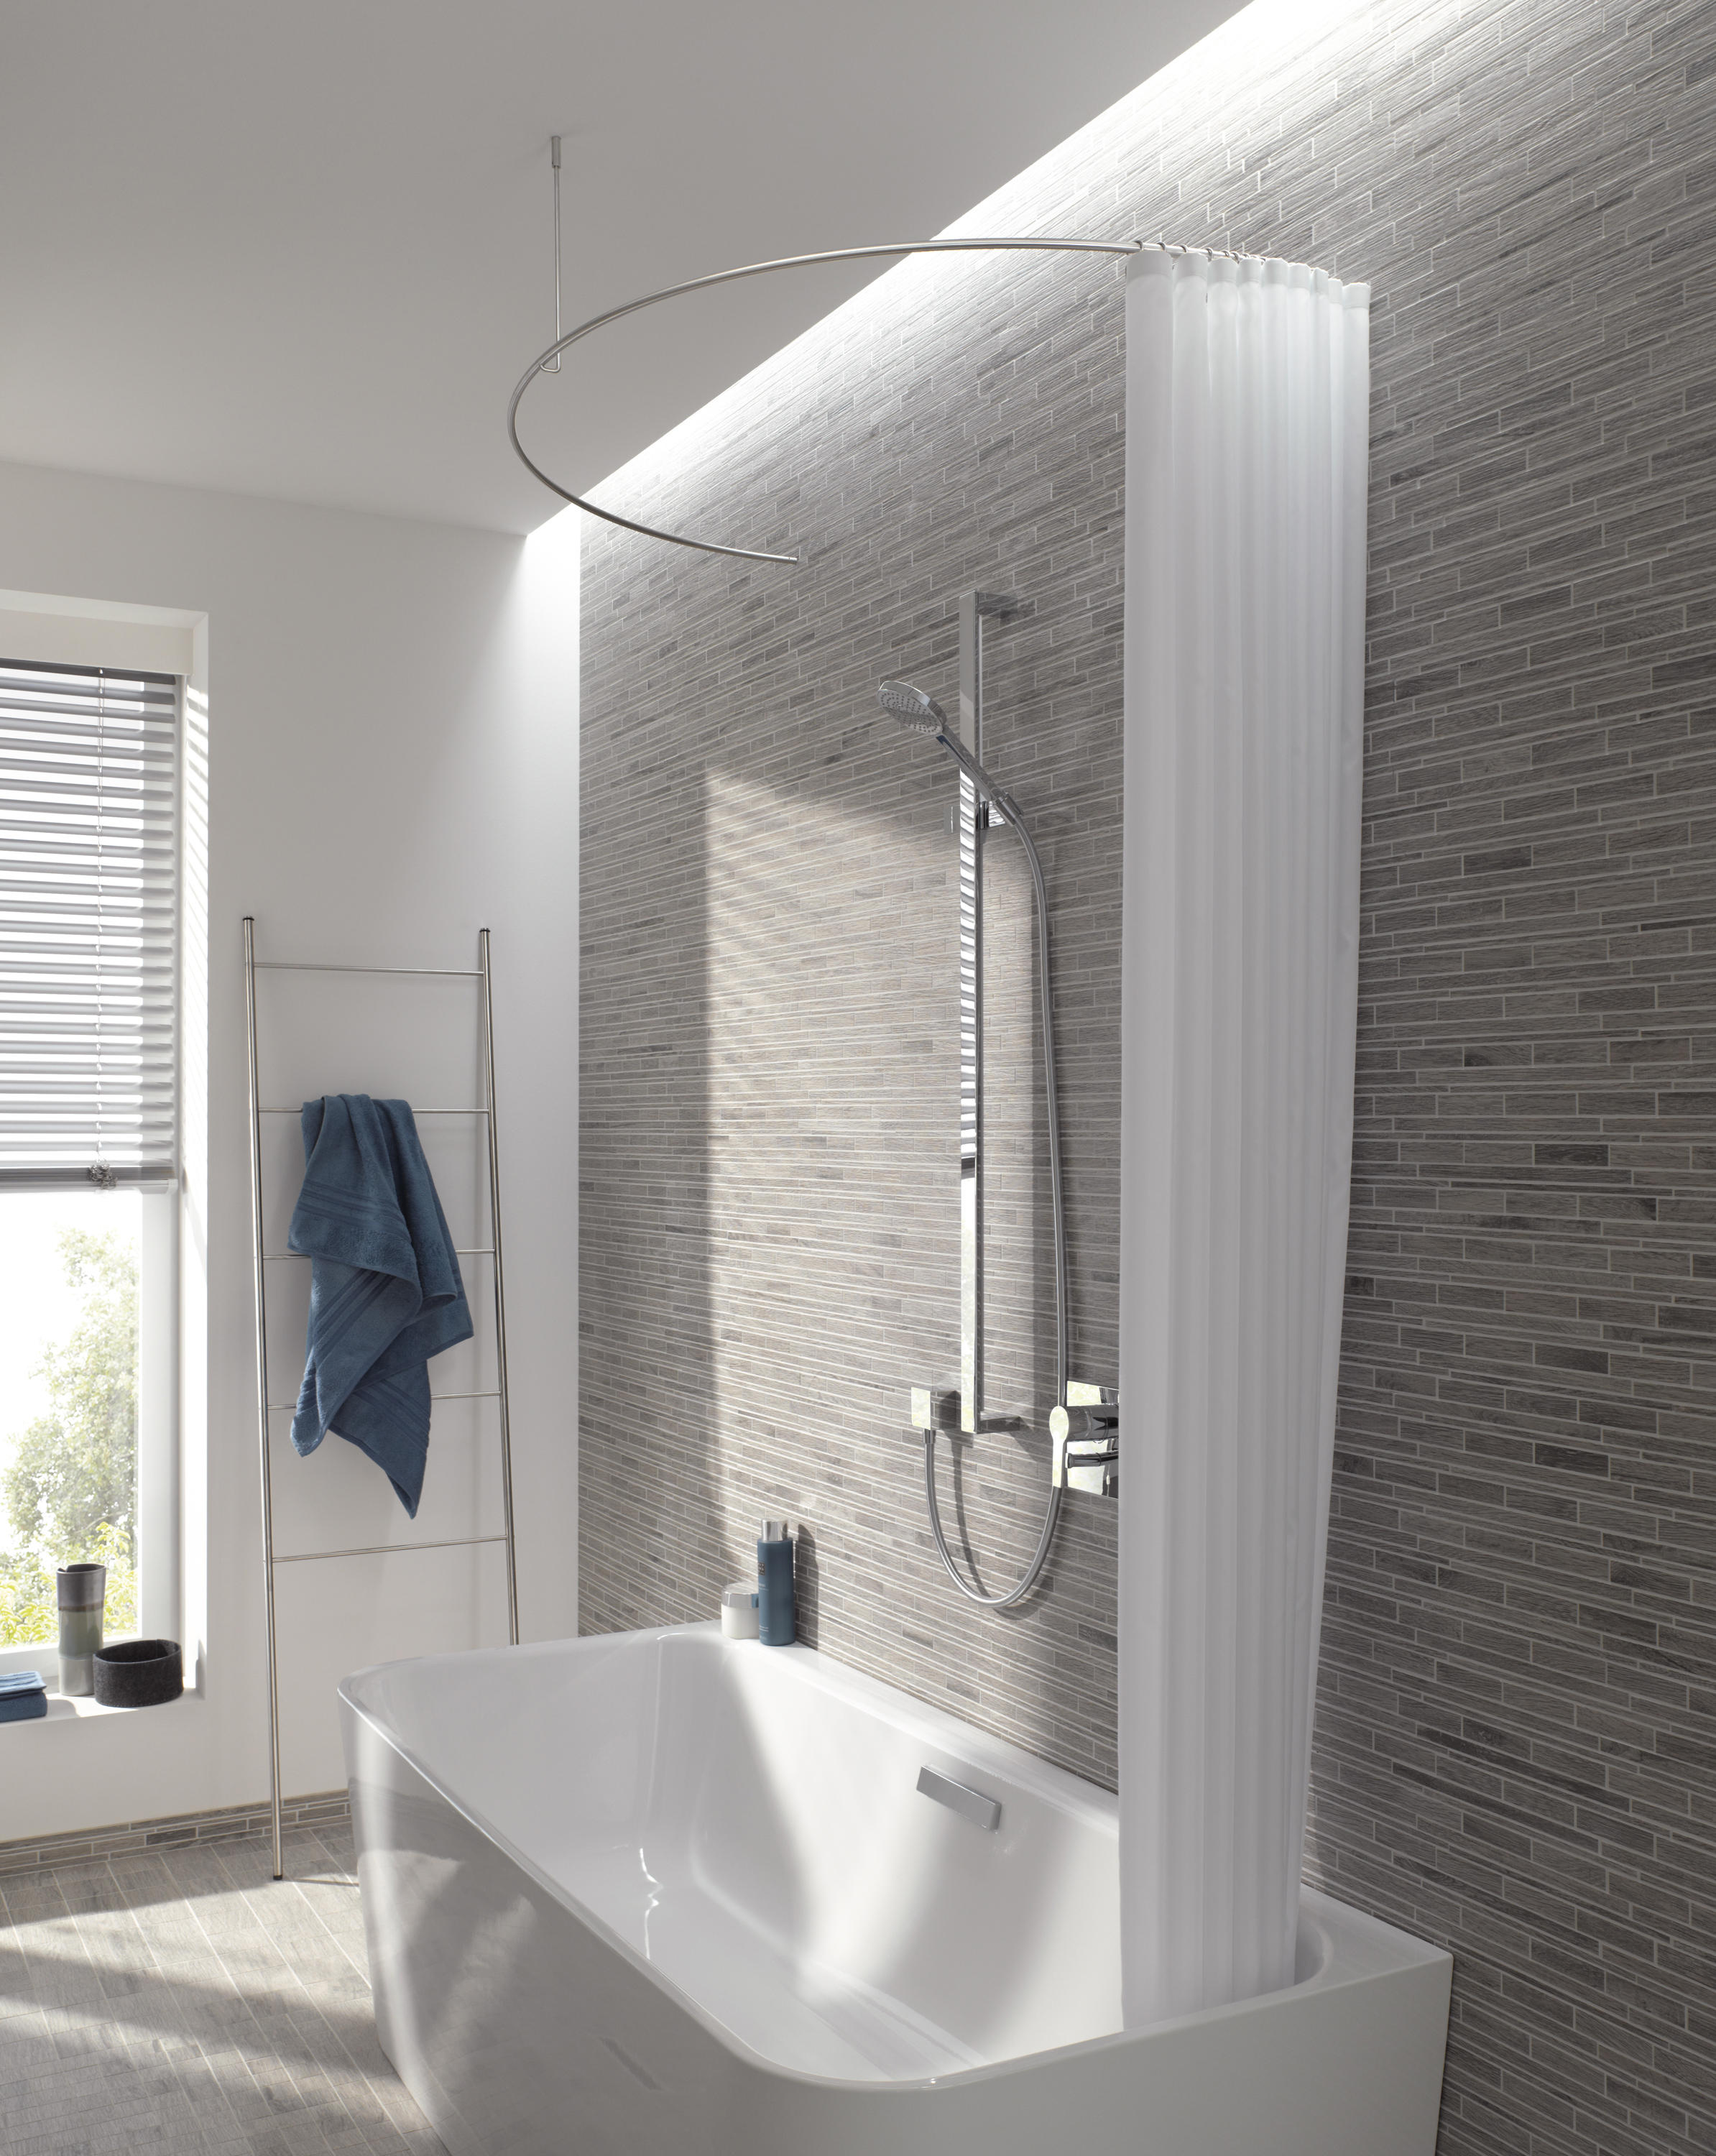 DUSCHVORHANGSTANGE DR 700 HD - Shower curtain rails from PHOS ...